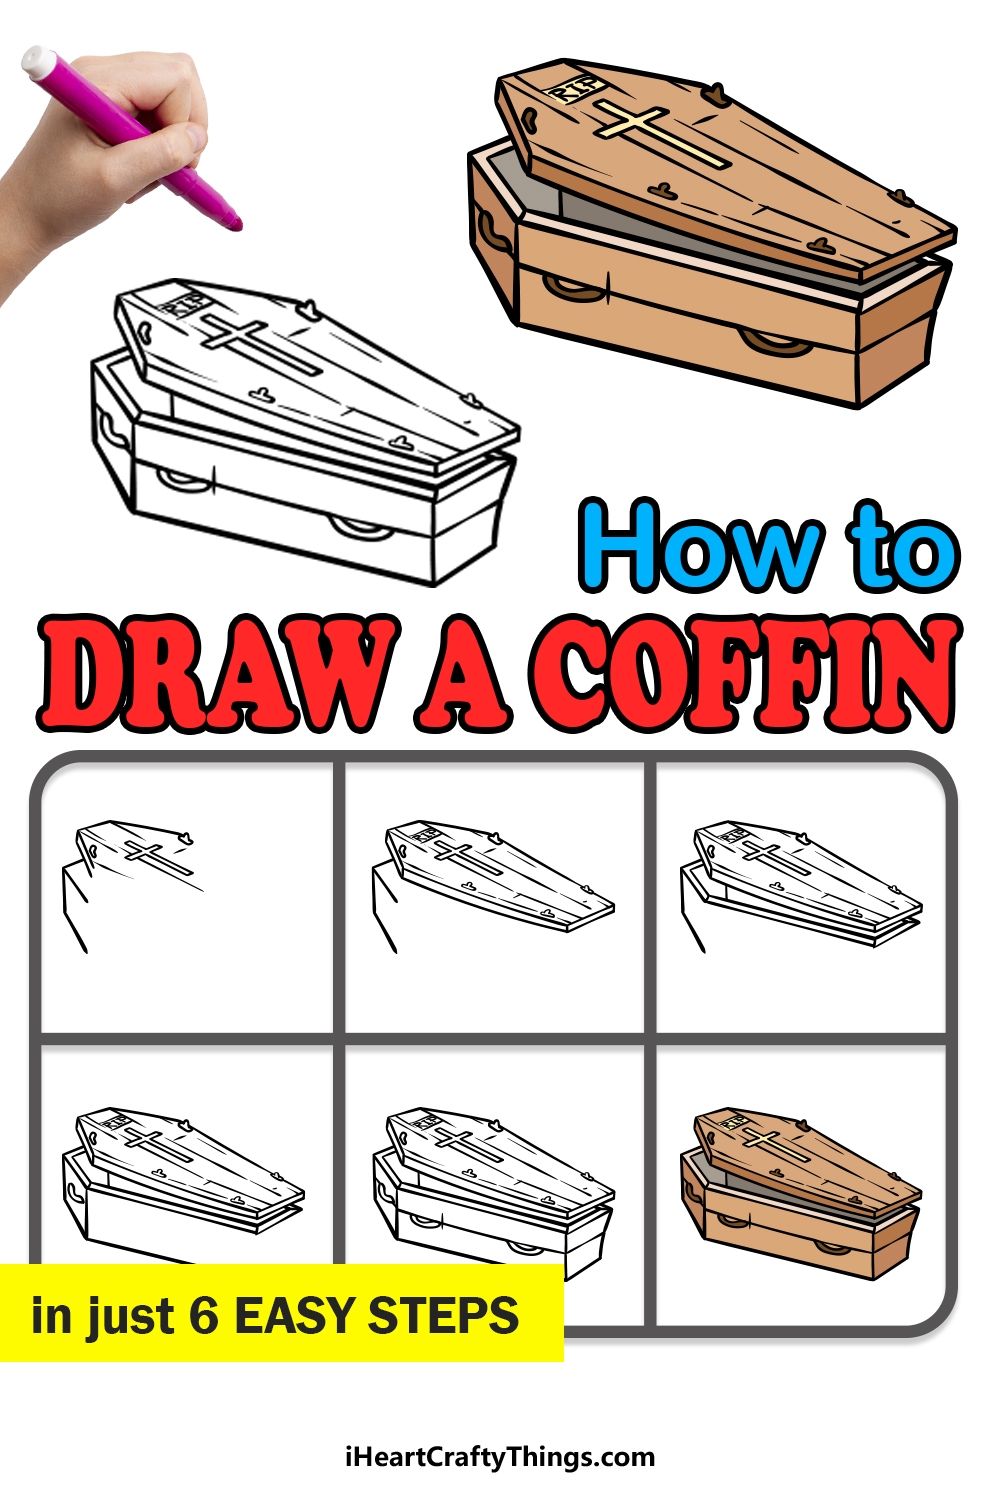 how to draw a coffin in 6 easy steps